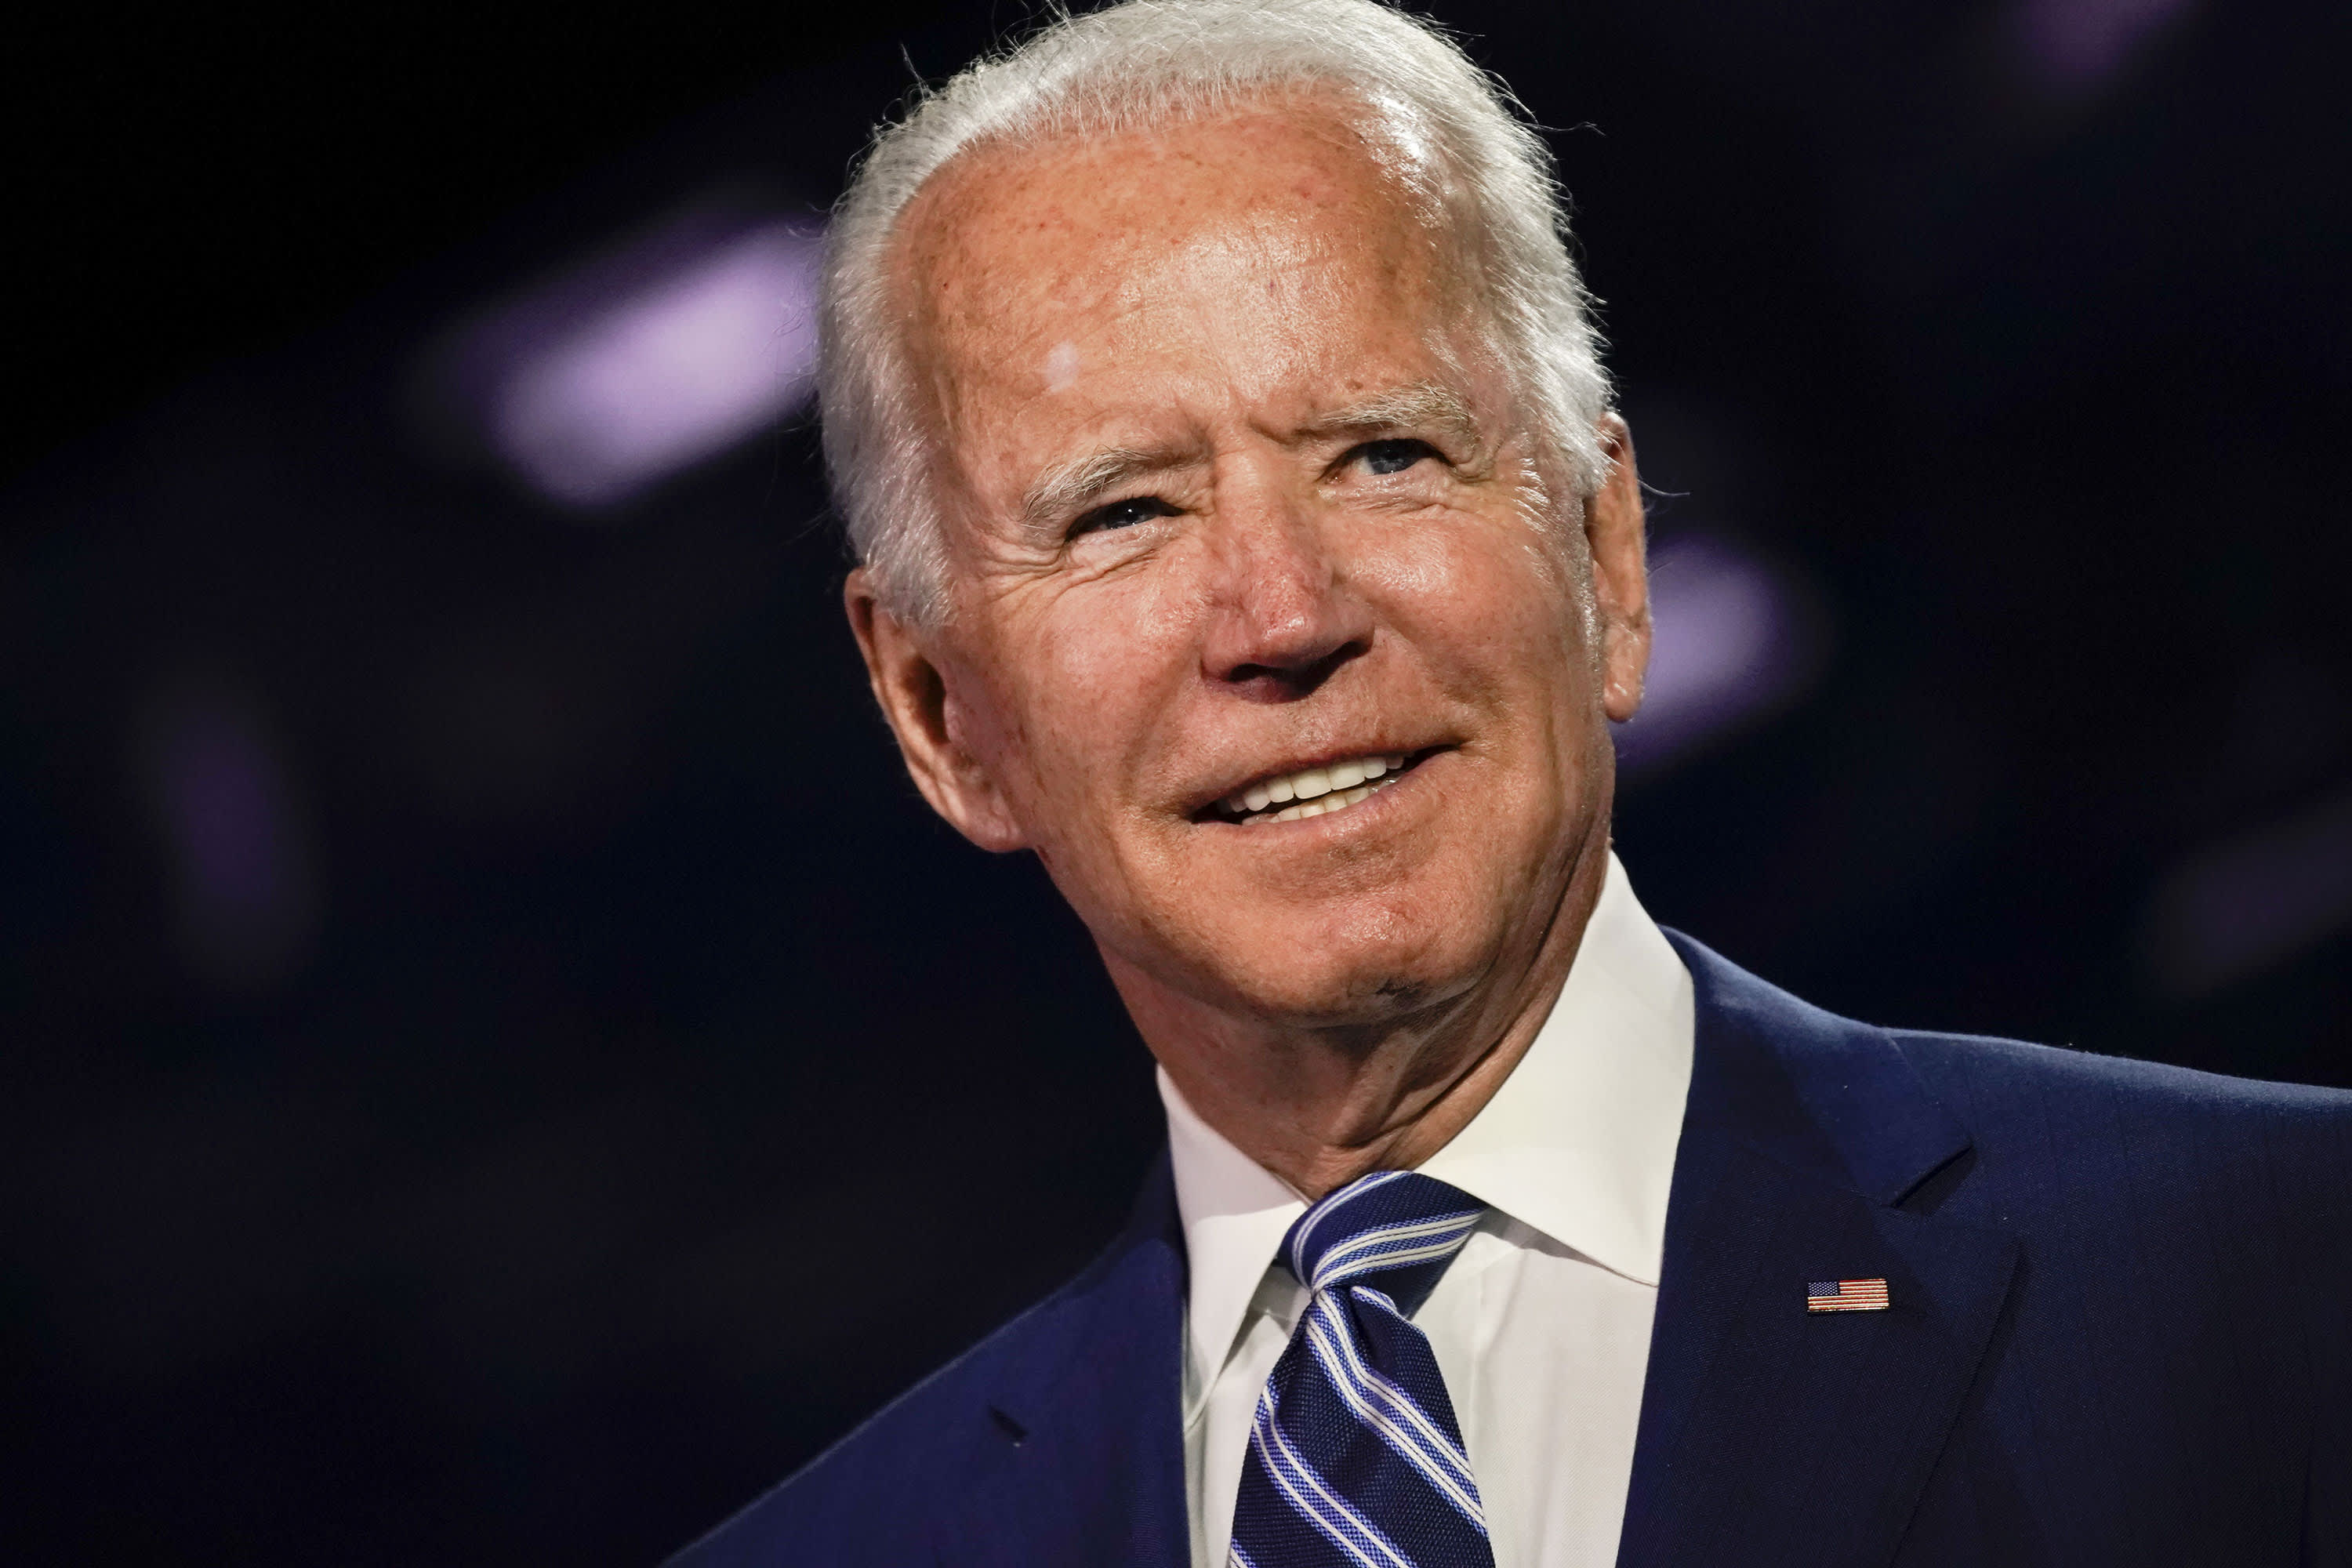 Biden campaign previews its election strategy for this fall